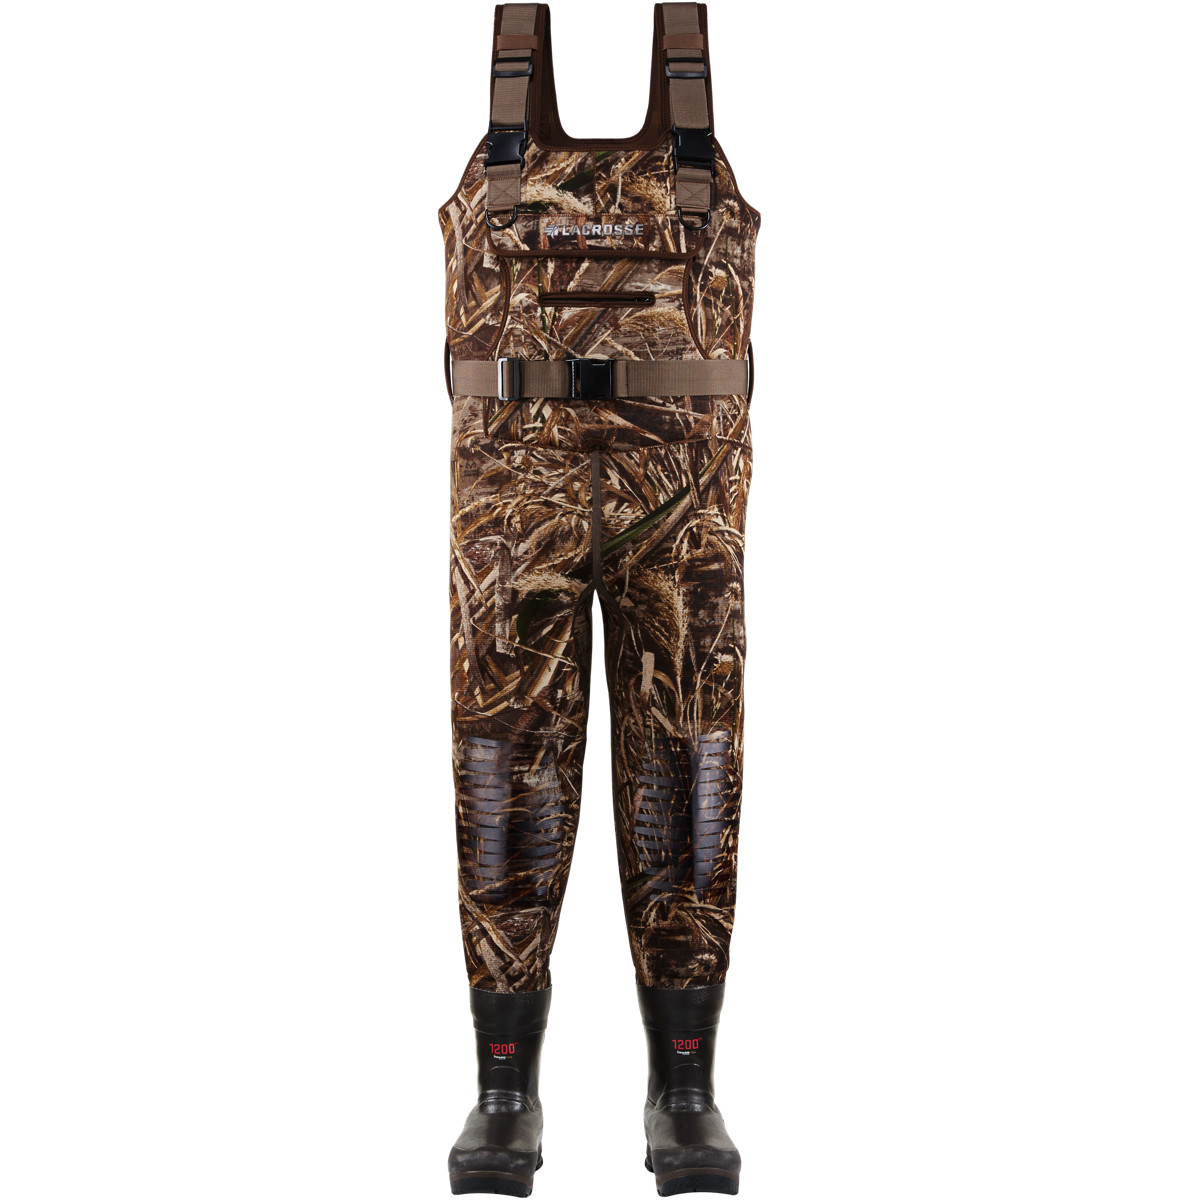 Swamp Tuff Realtree Max-5 1200G